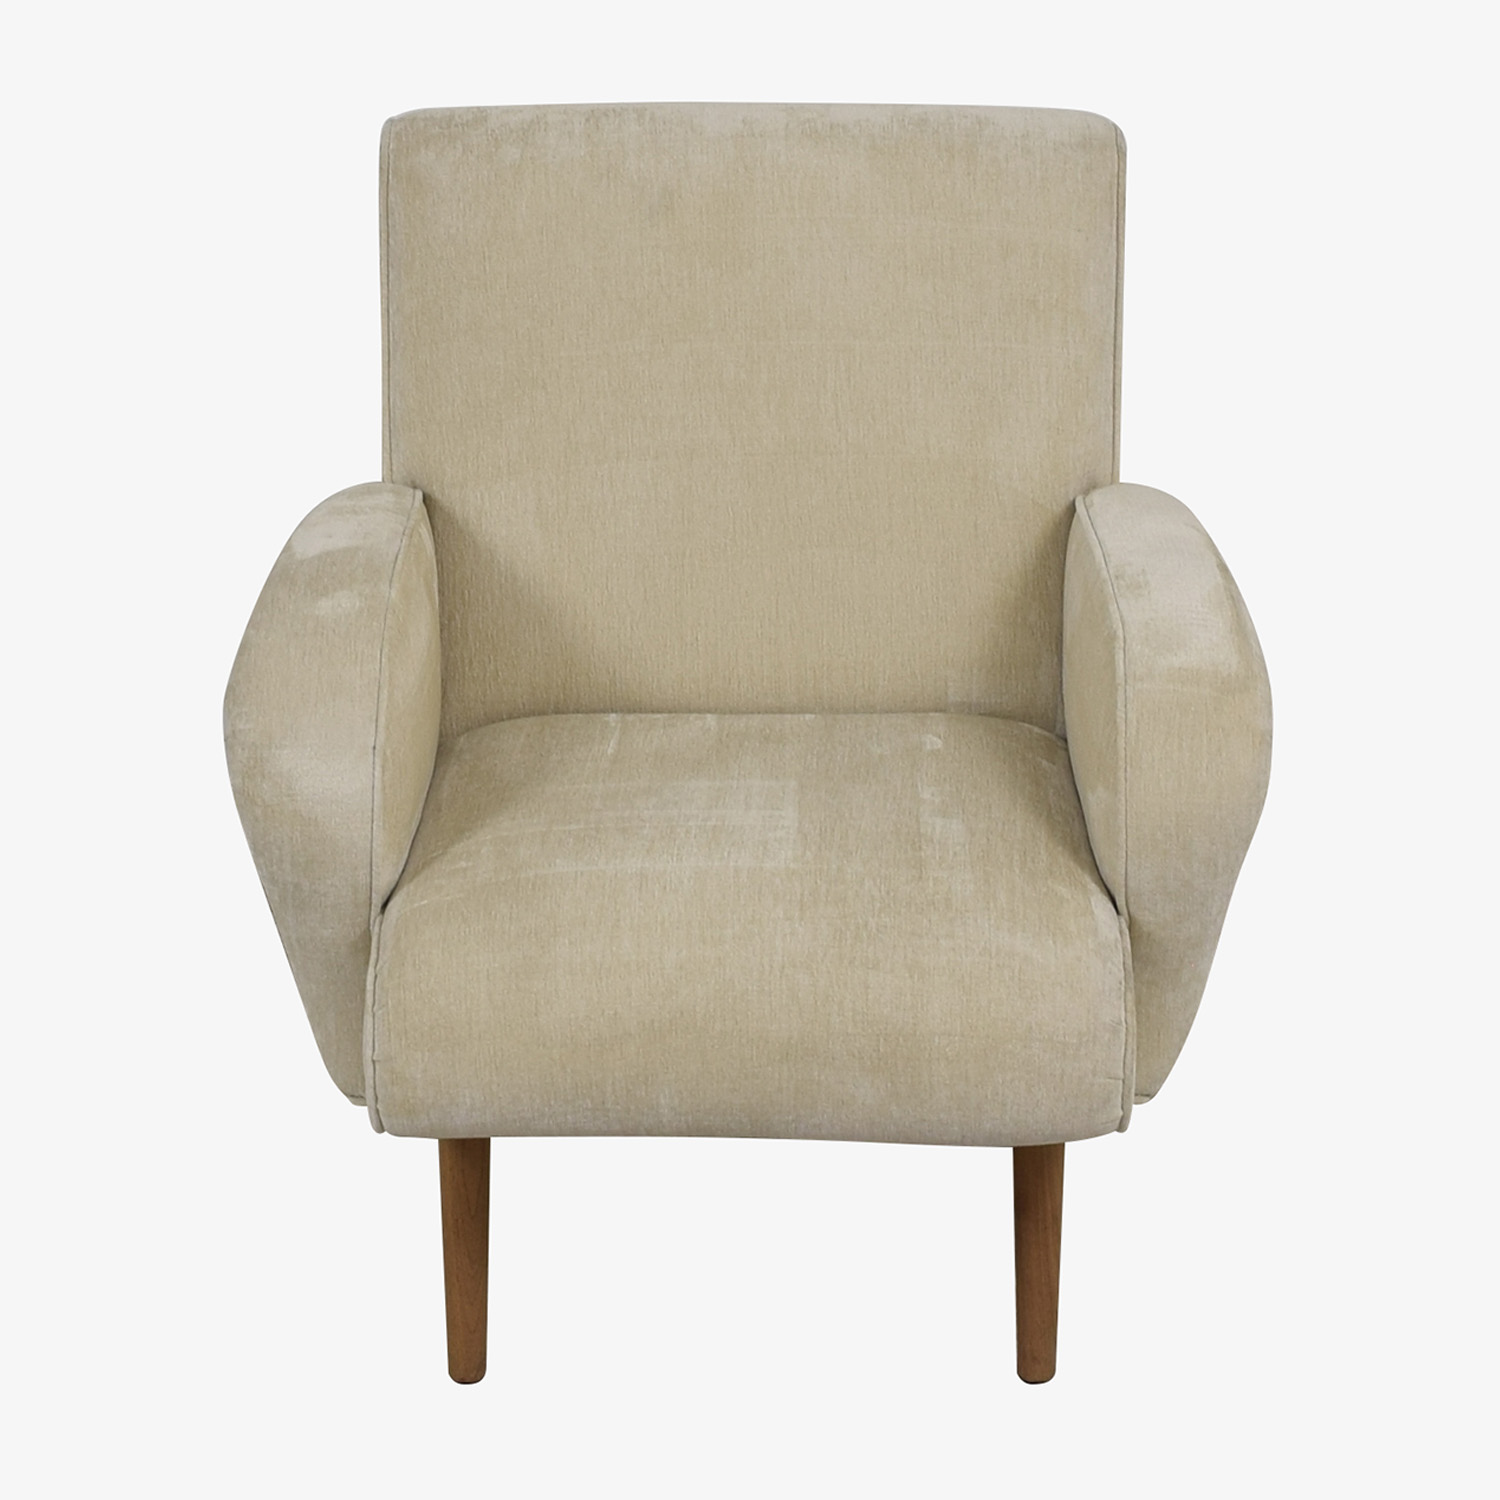 Tremendous 89 Off Furniture Masters Furniture Masters Beige Upholstered Wing Accent Chair Chairs Ibusinesslaw Wood Chair Design Ideas Ibusinesslaworg